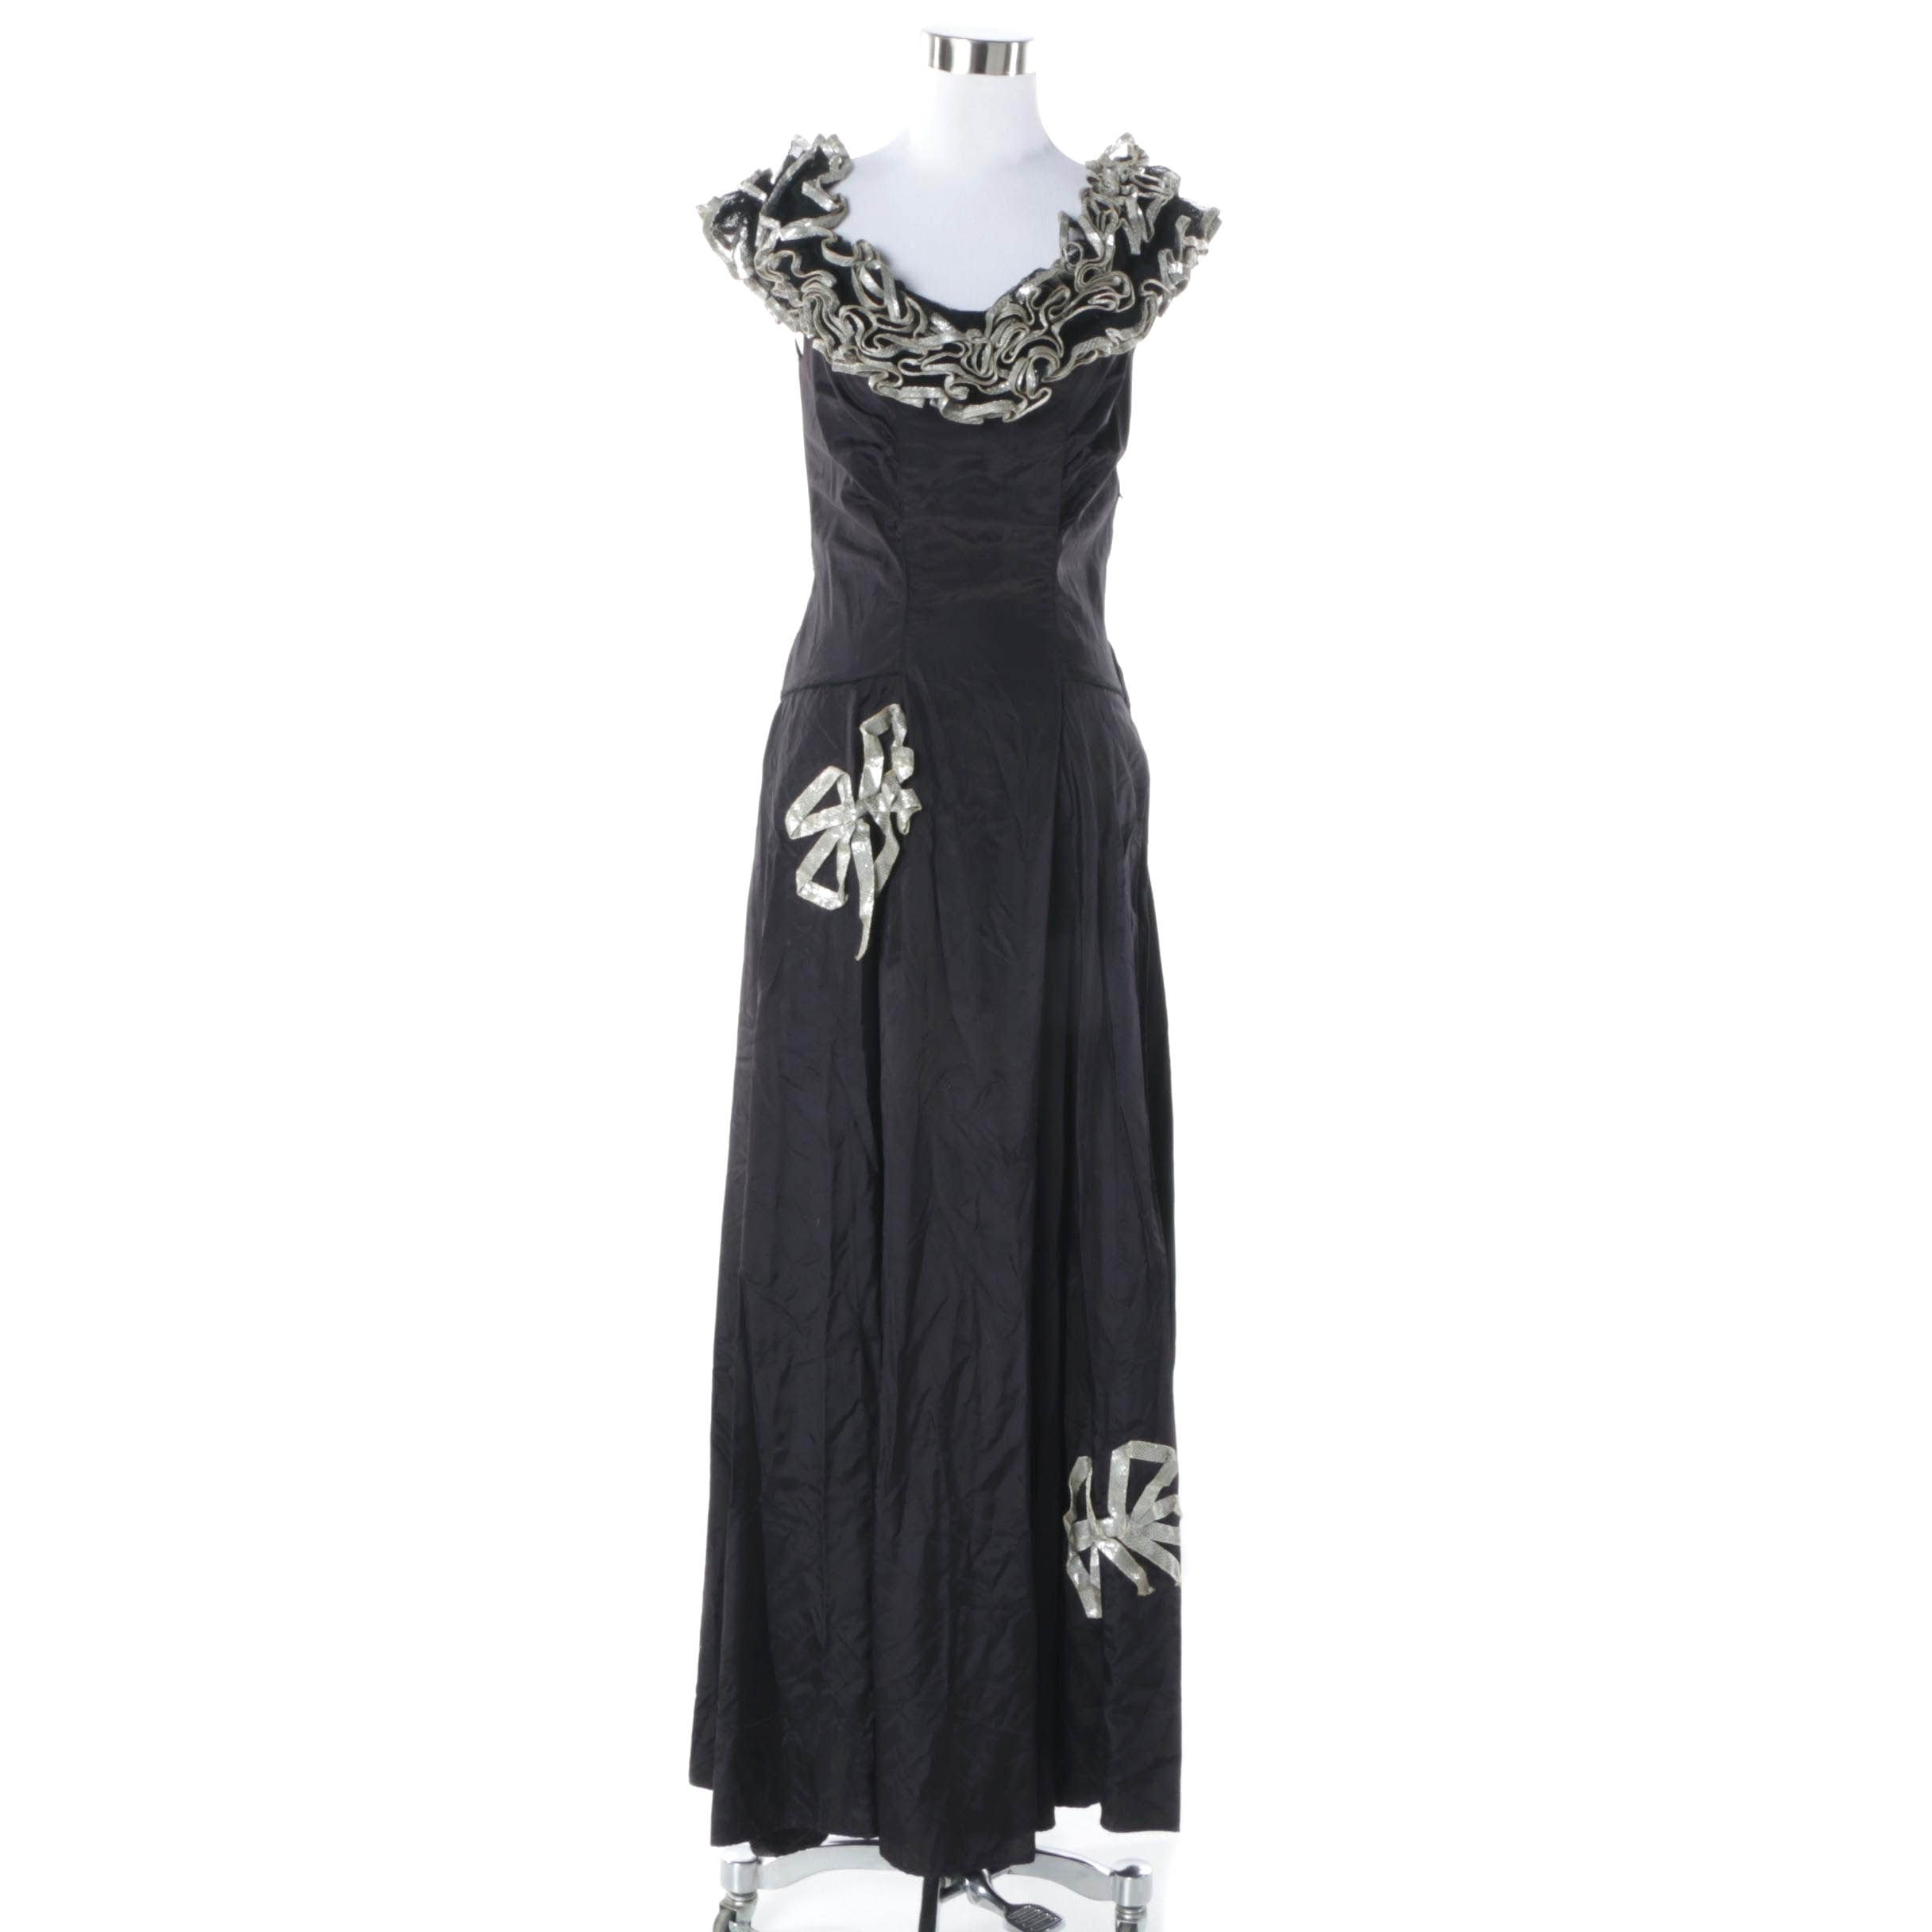 Circa 1940s Vintage Ann Nicks Black Faille Evening Dress